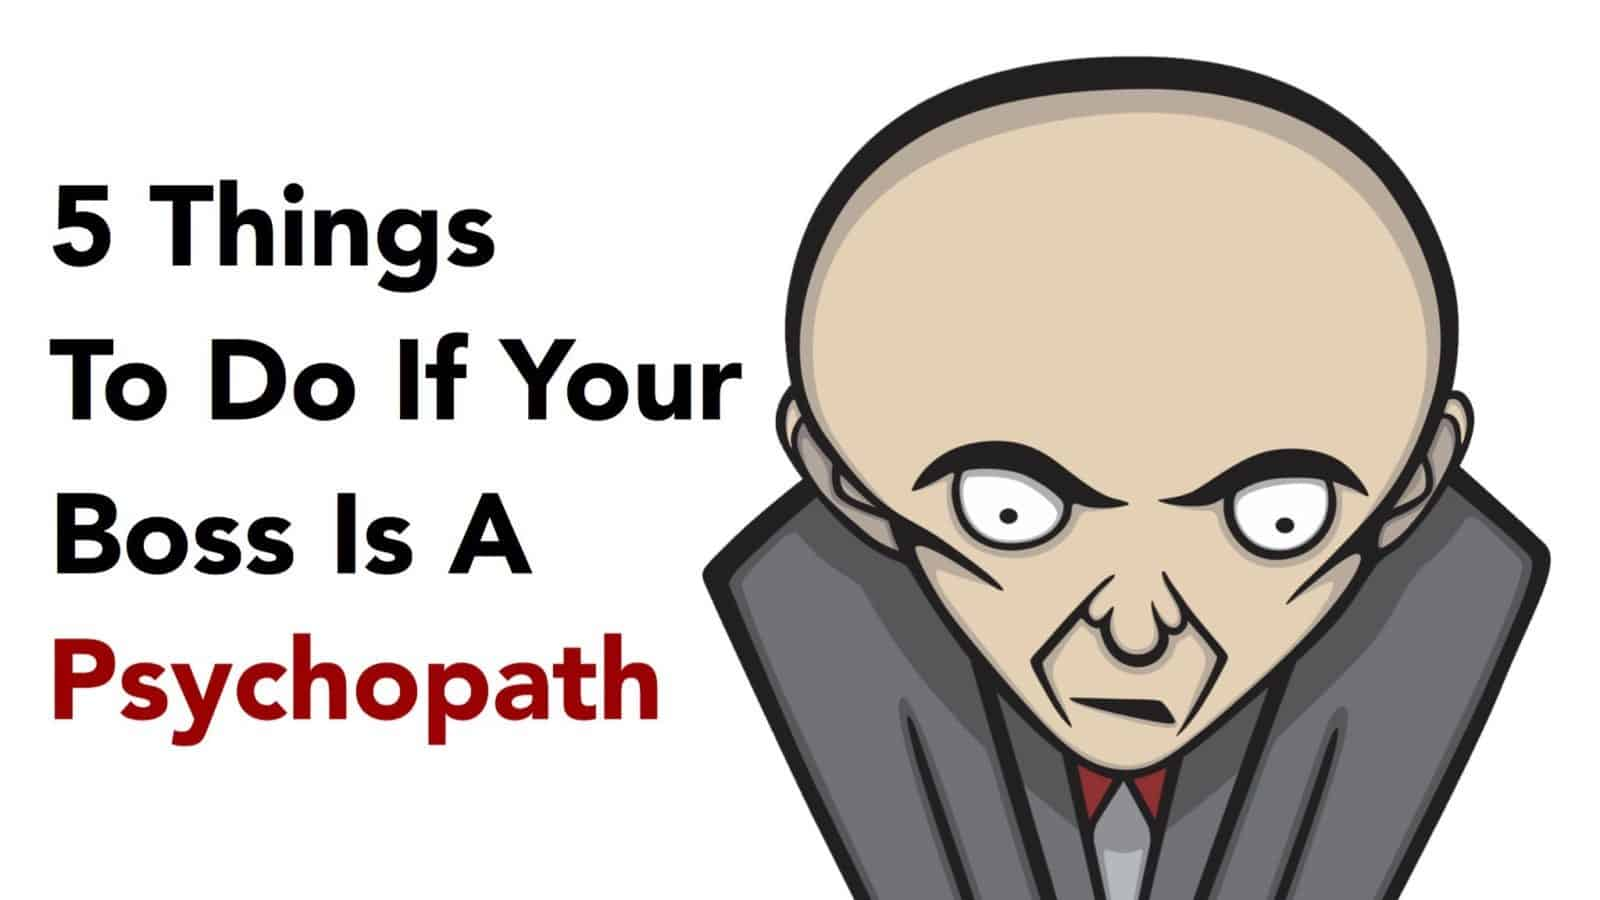 5 Things To Do If Your Boss Is A Psychopath